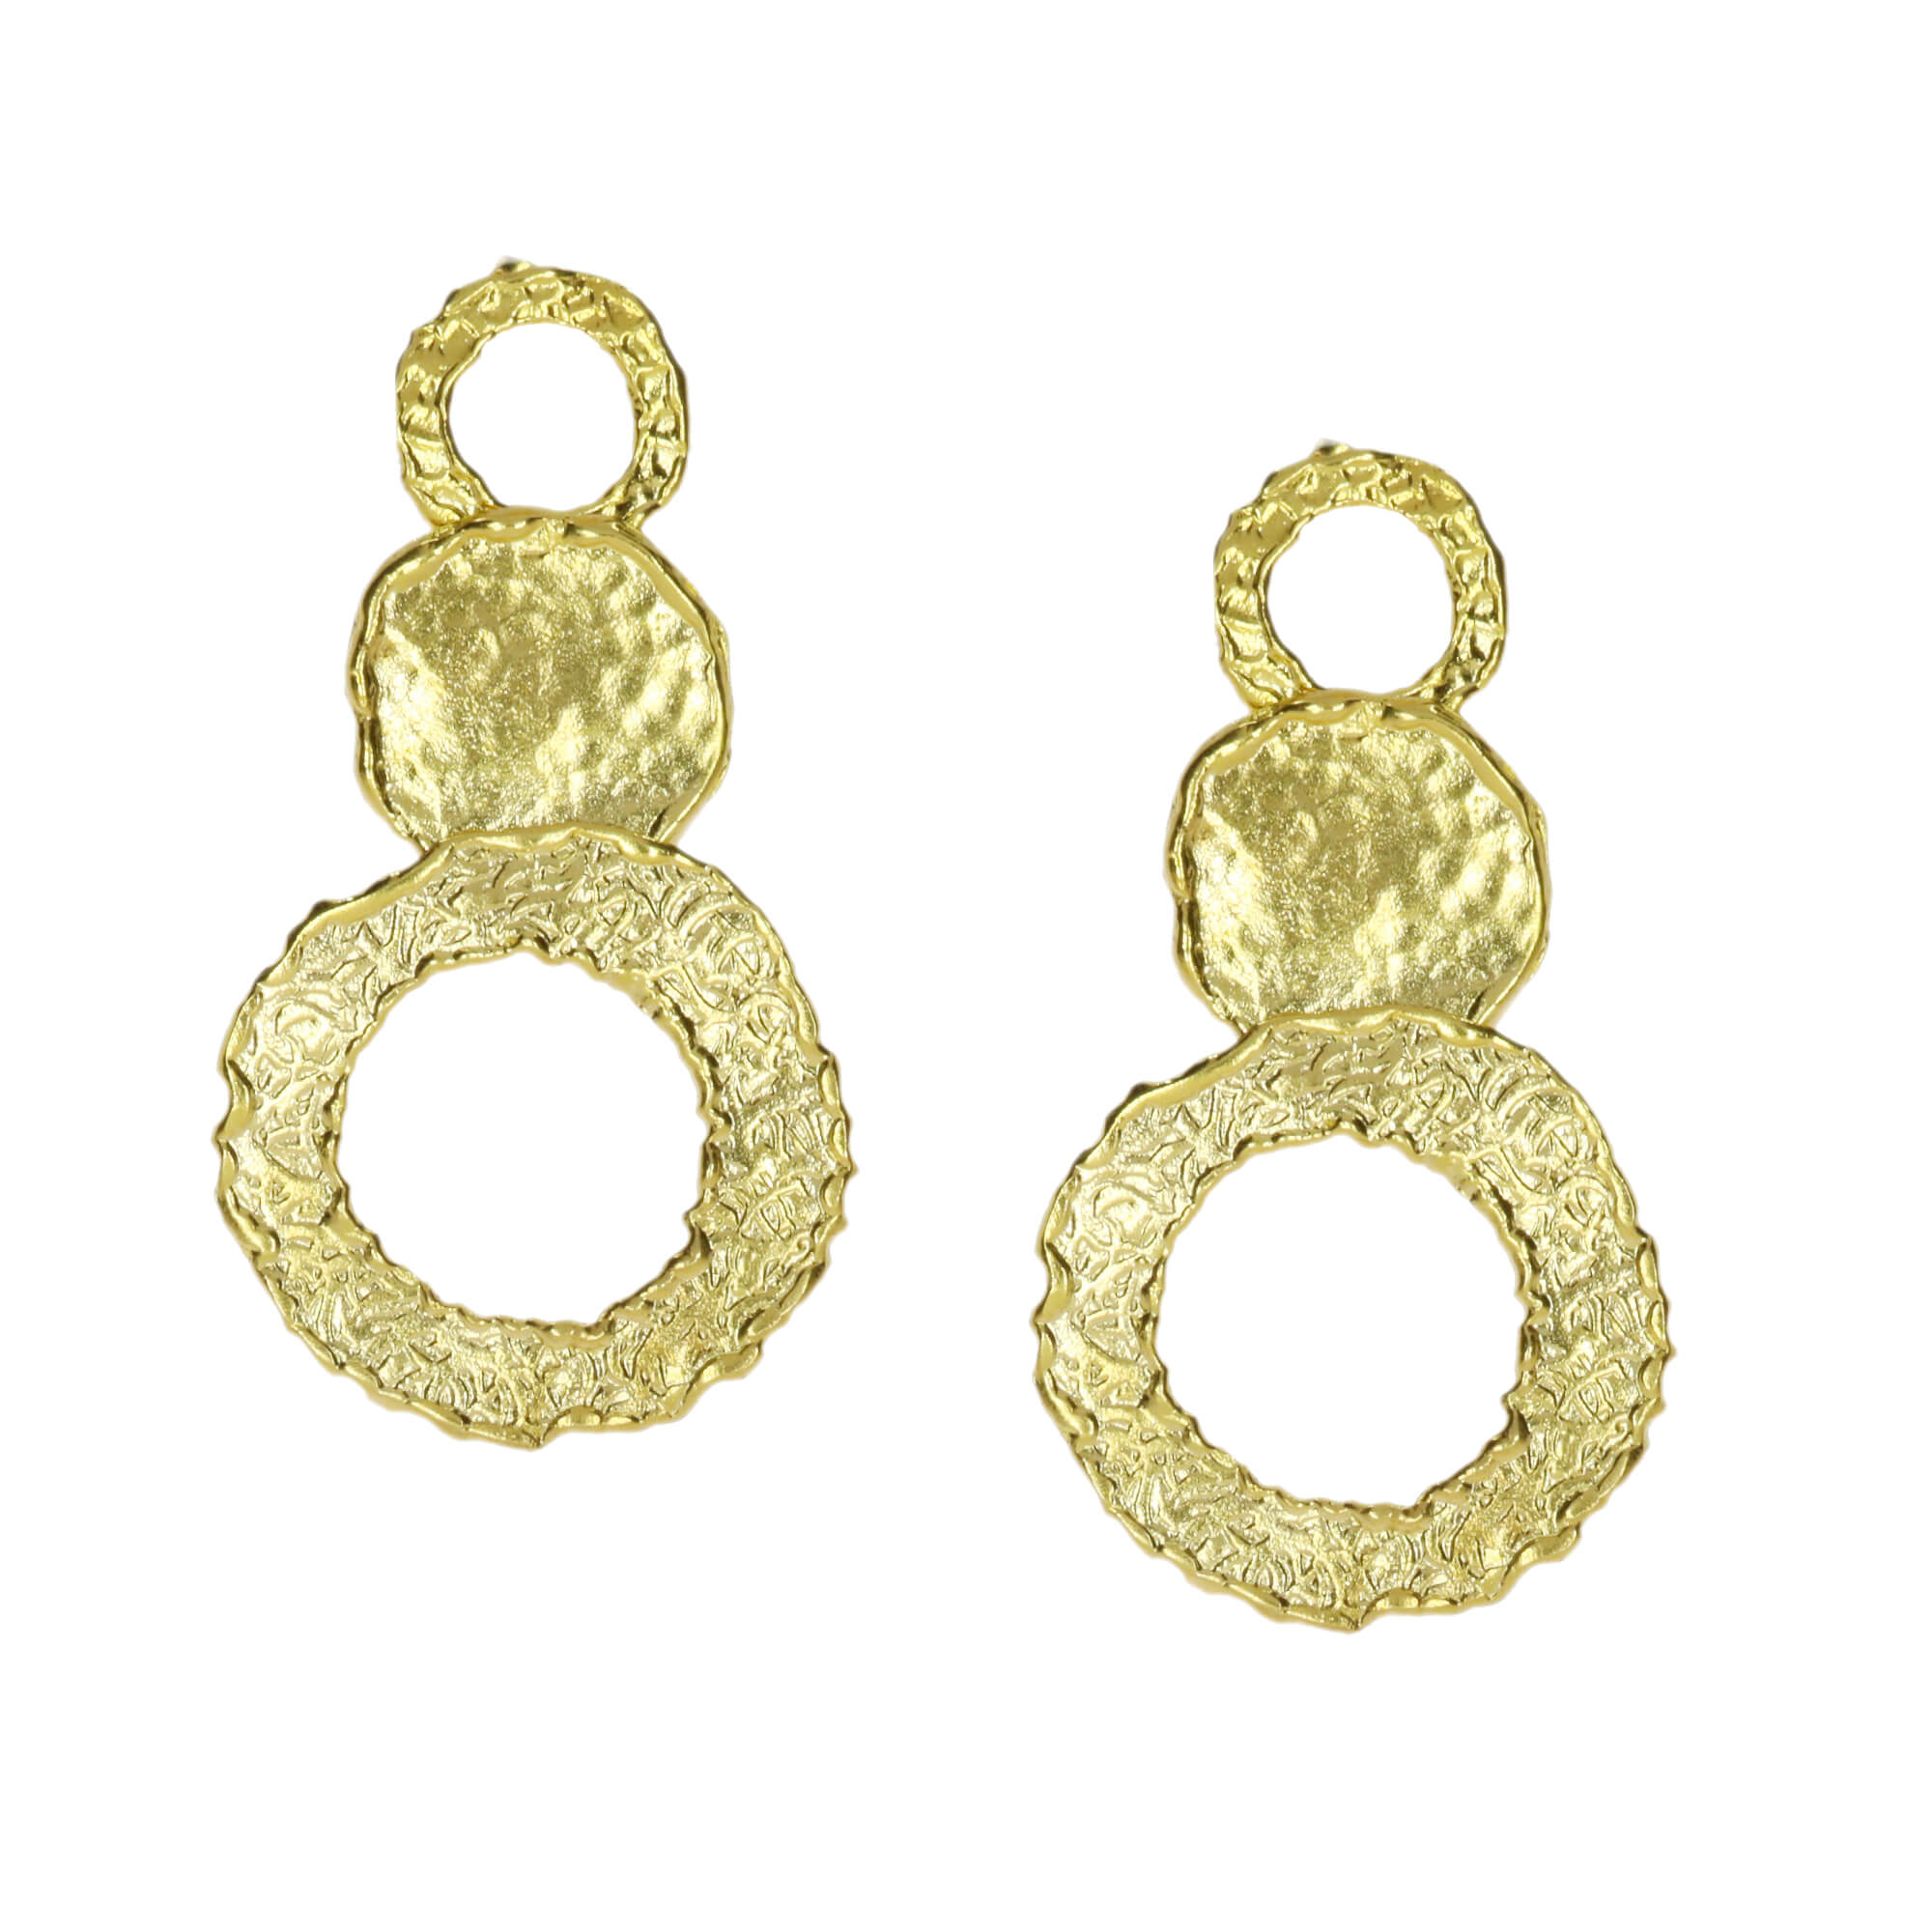 OTTOMAN DI08 Circles earrings in gold